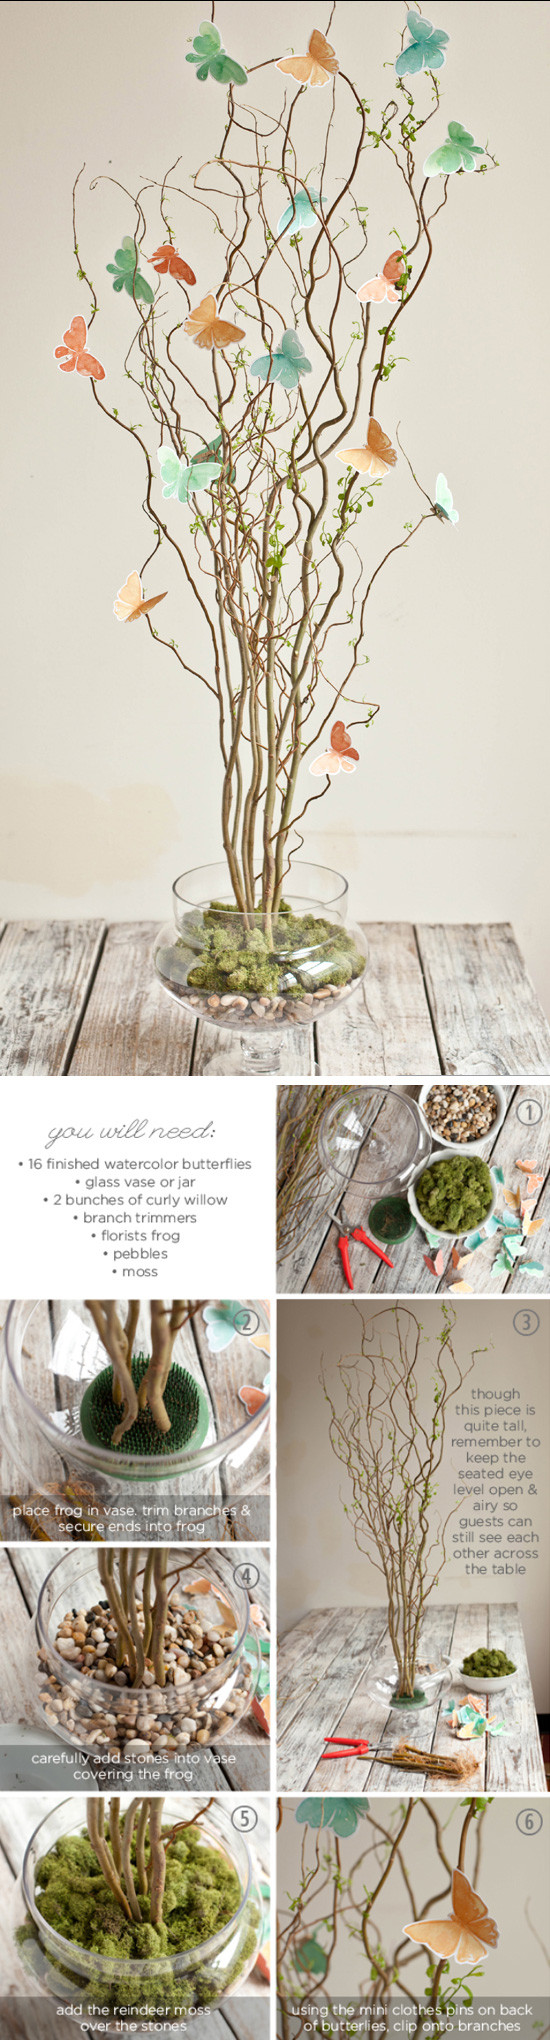 DIY Wedding Decorations On A Budget  24 DIY Spring Wedding Ideas on a Bud